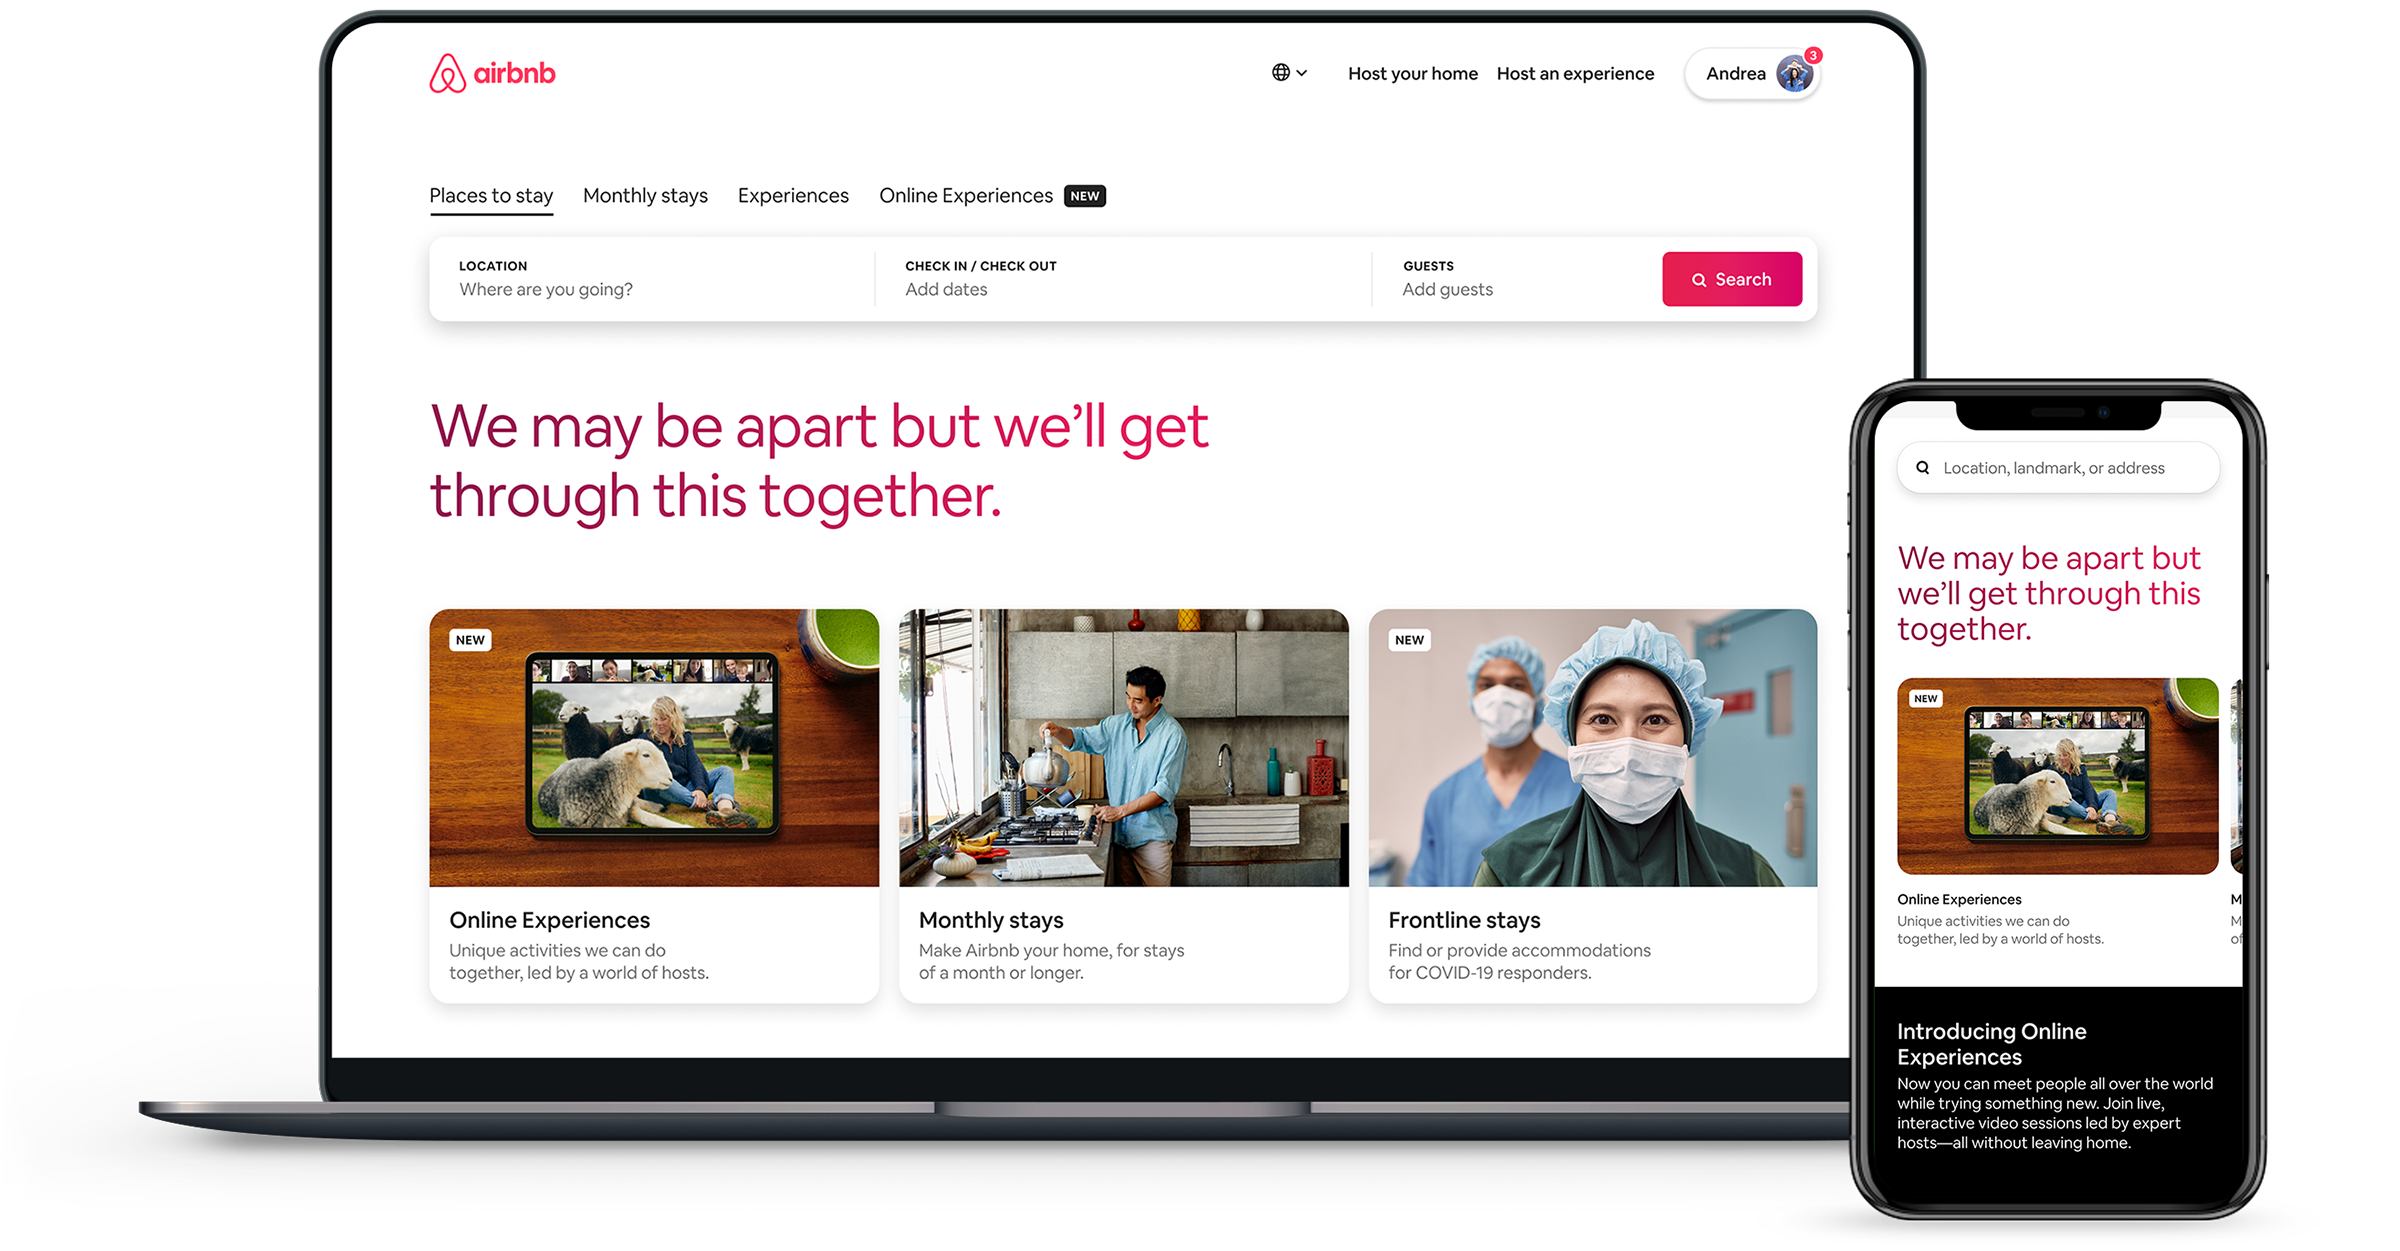 Airbnb Online Experiences